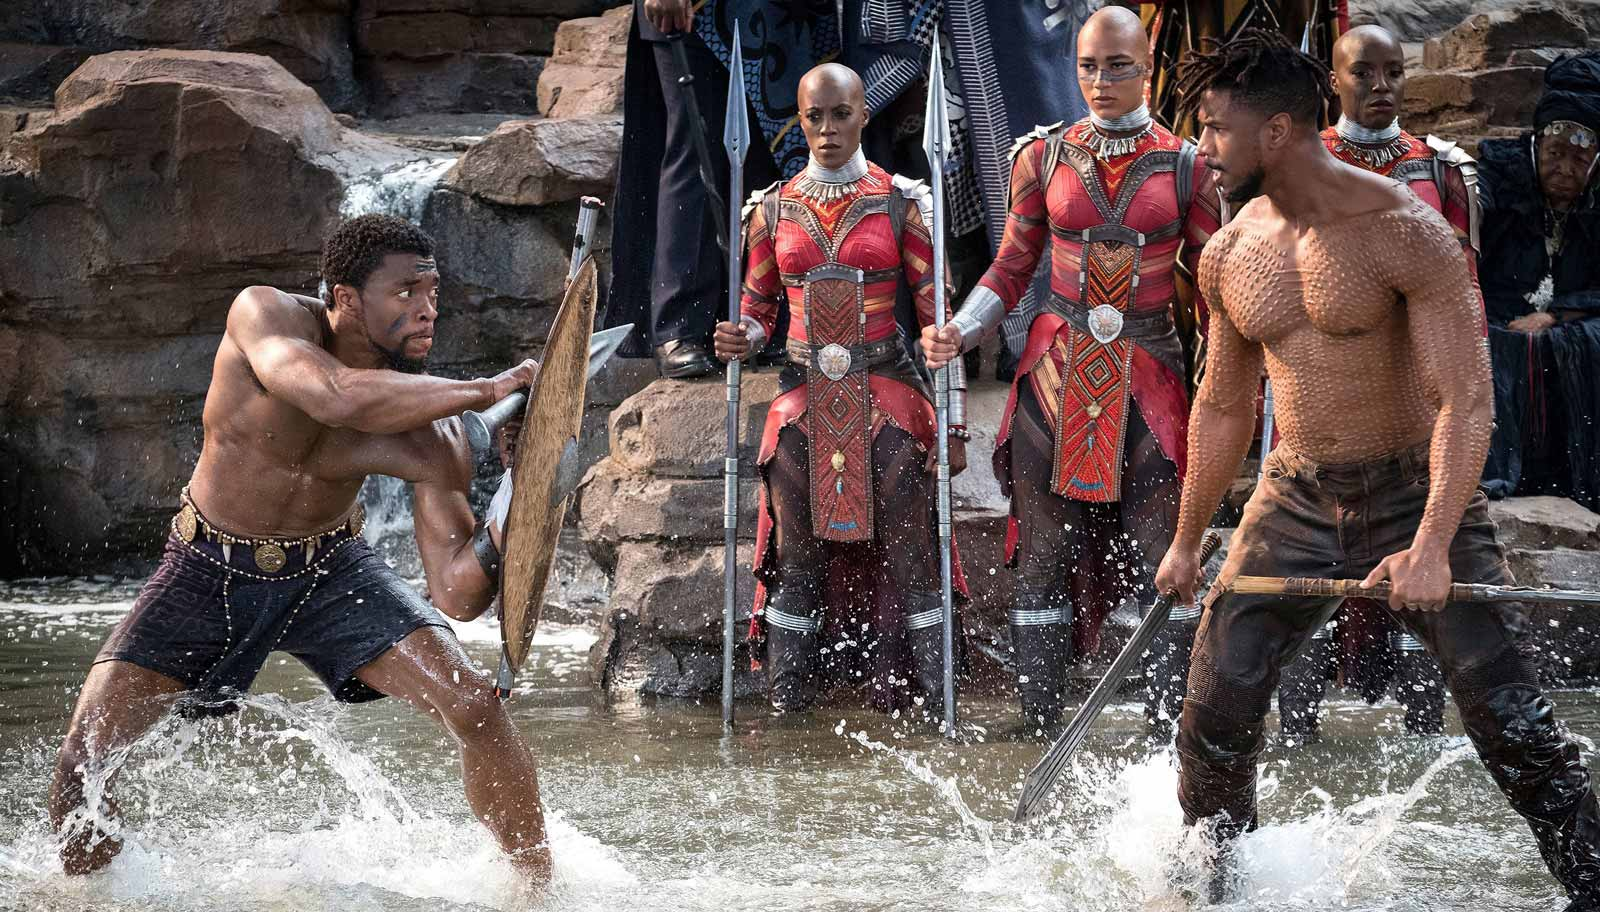 Chadwick Boseman as T'Challa and Michael B. Jordan as Erik Killmonger, with members of the Dora Milaje special forces behind them, from Ryan Coogler's Black Panther, 2018